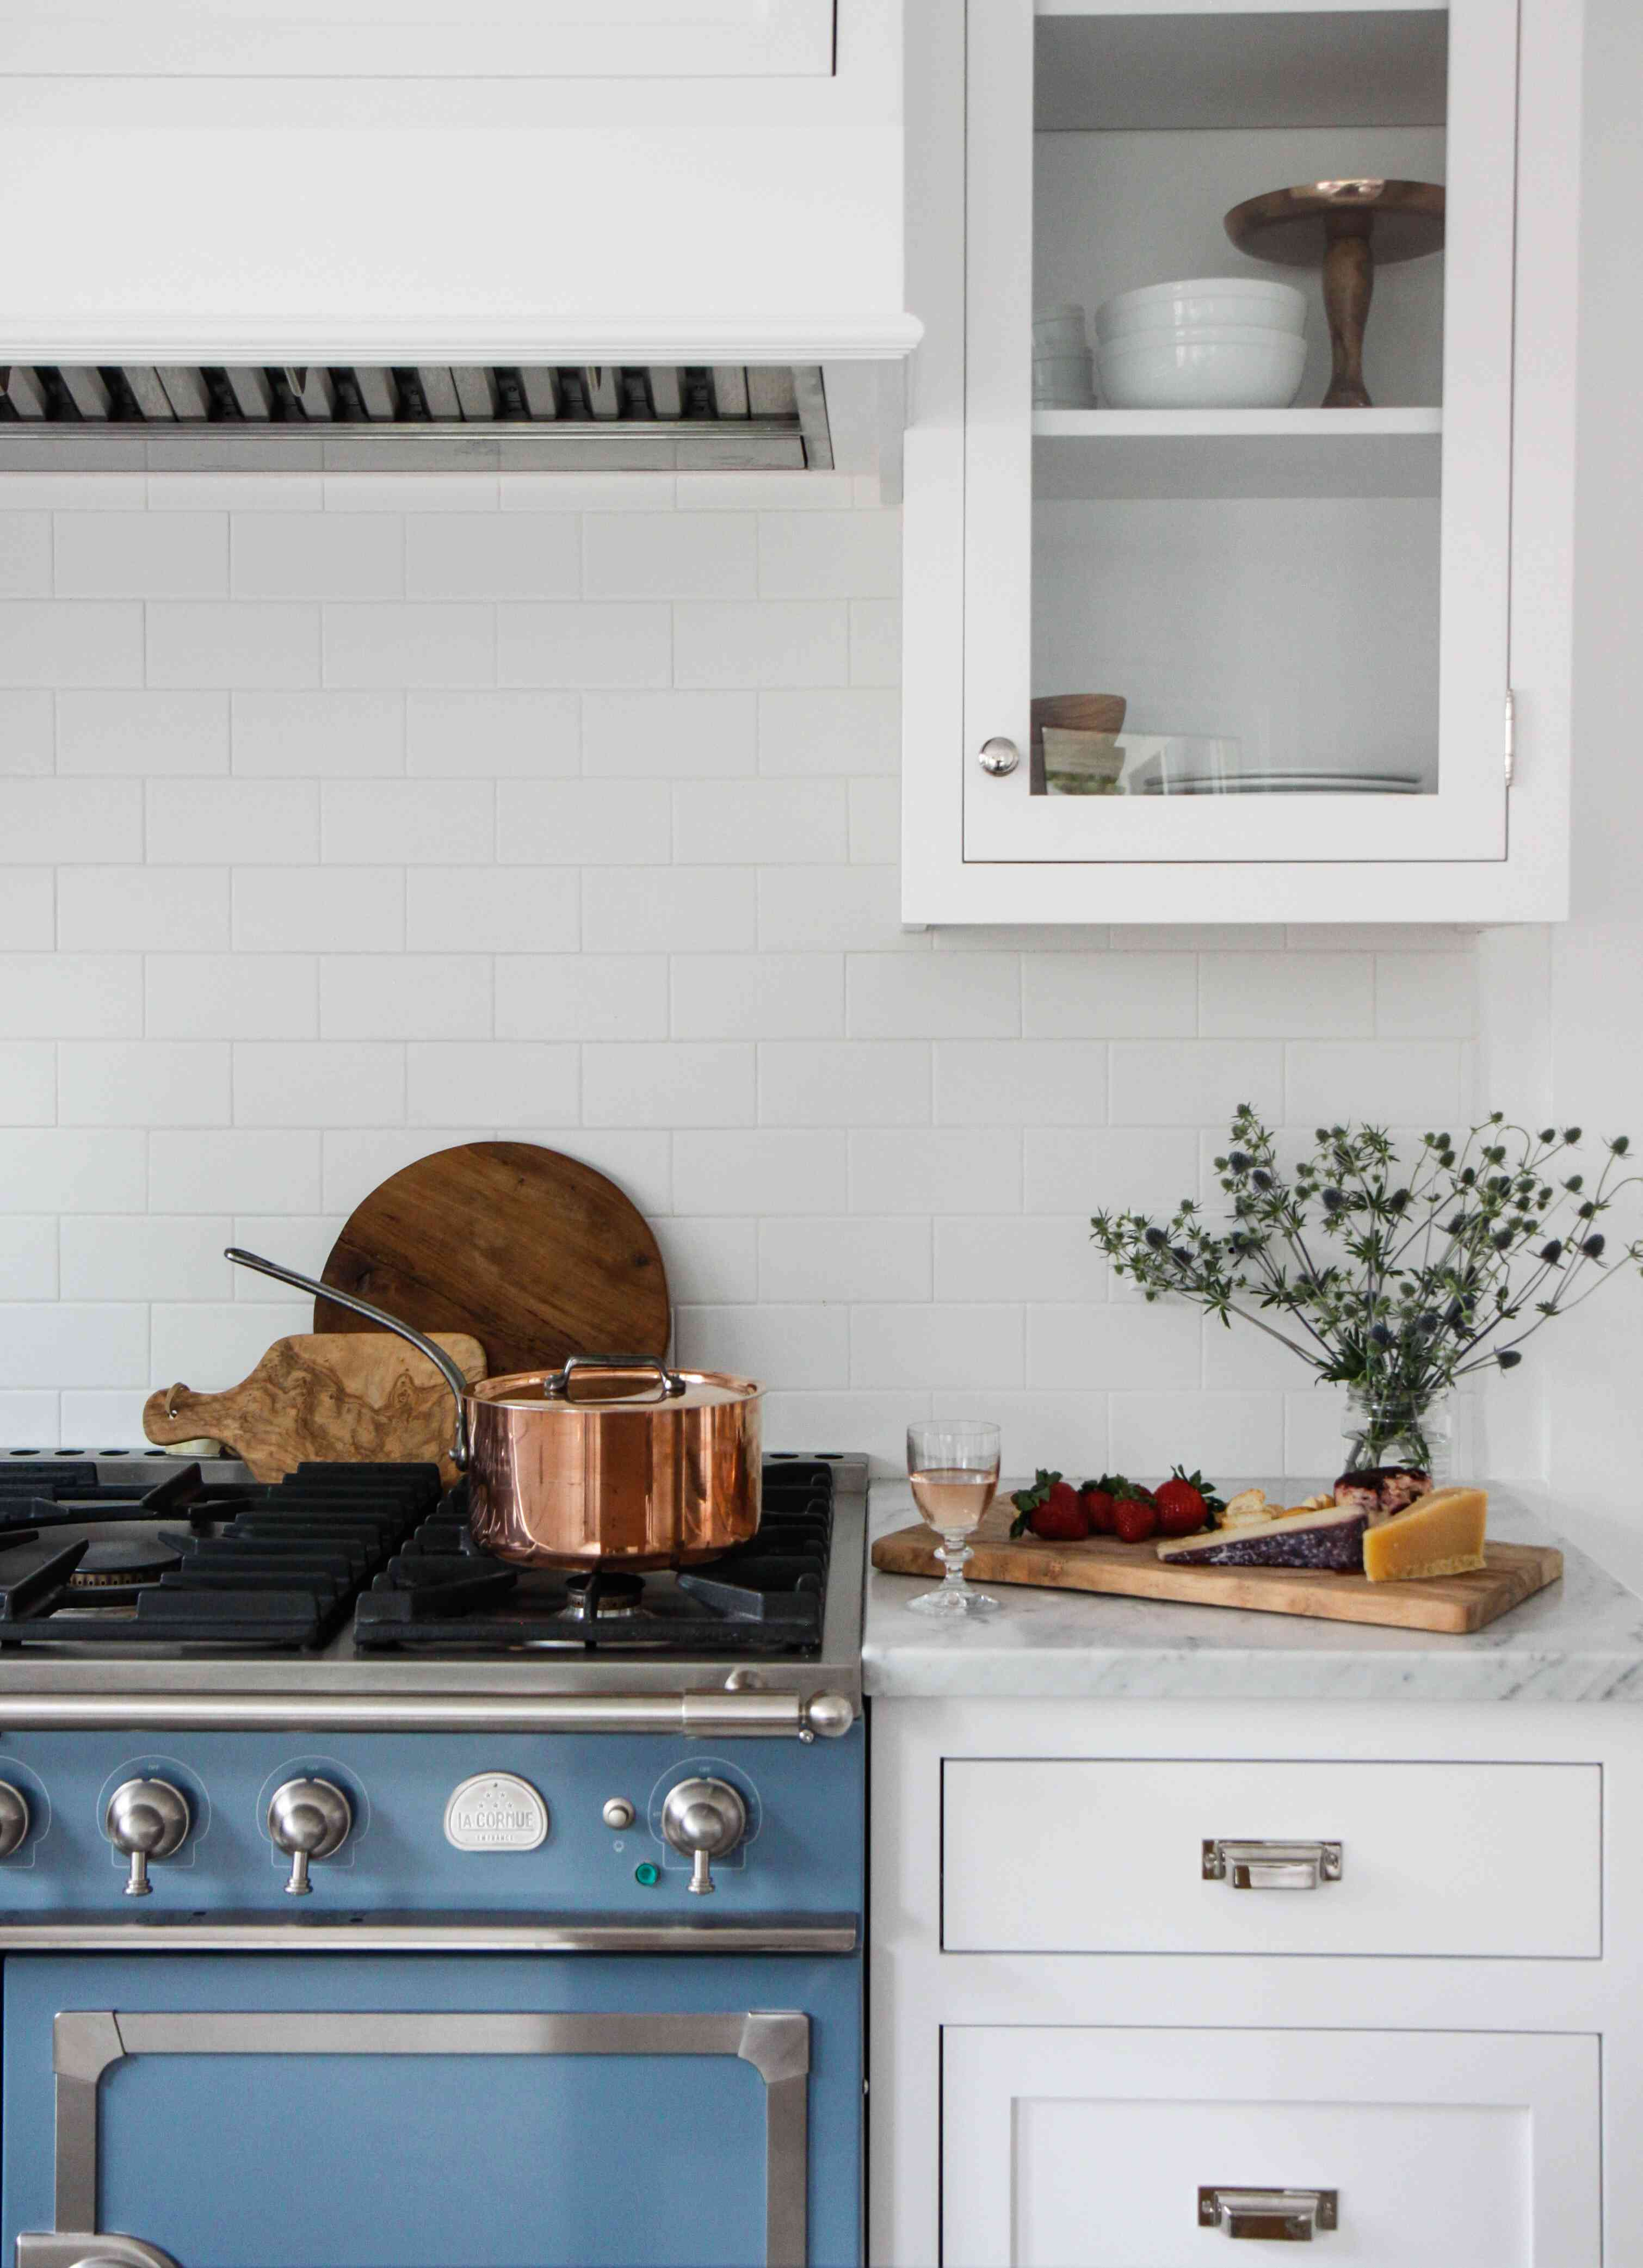 purposeful decorating in a kitchen